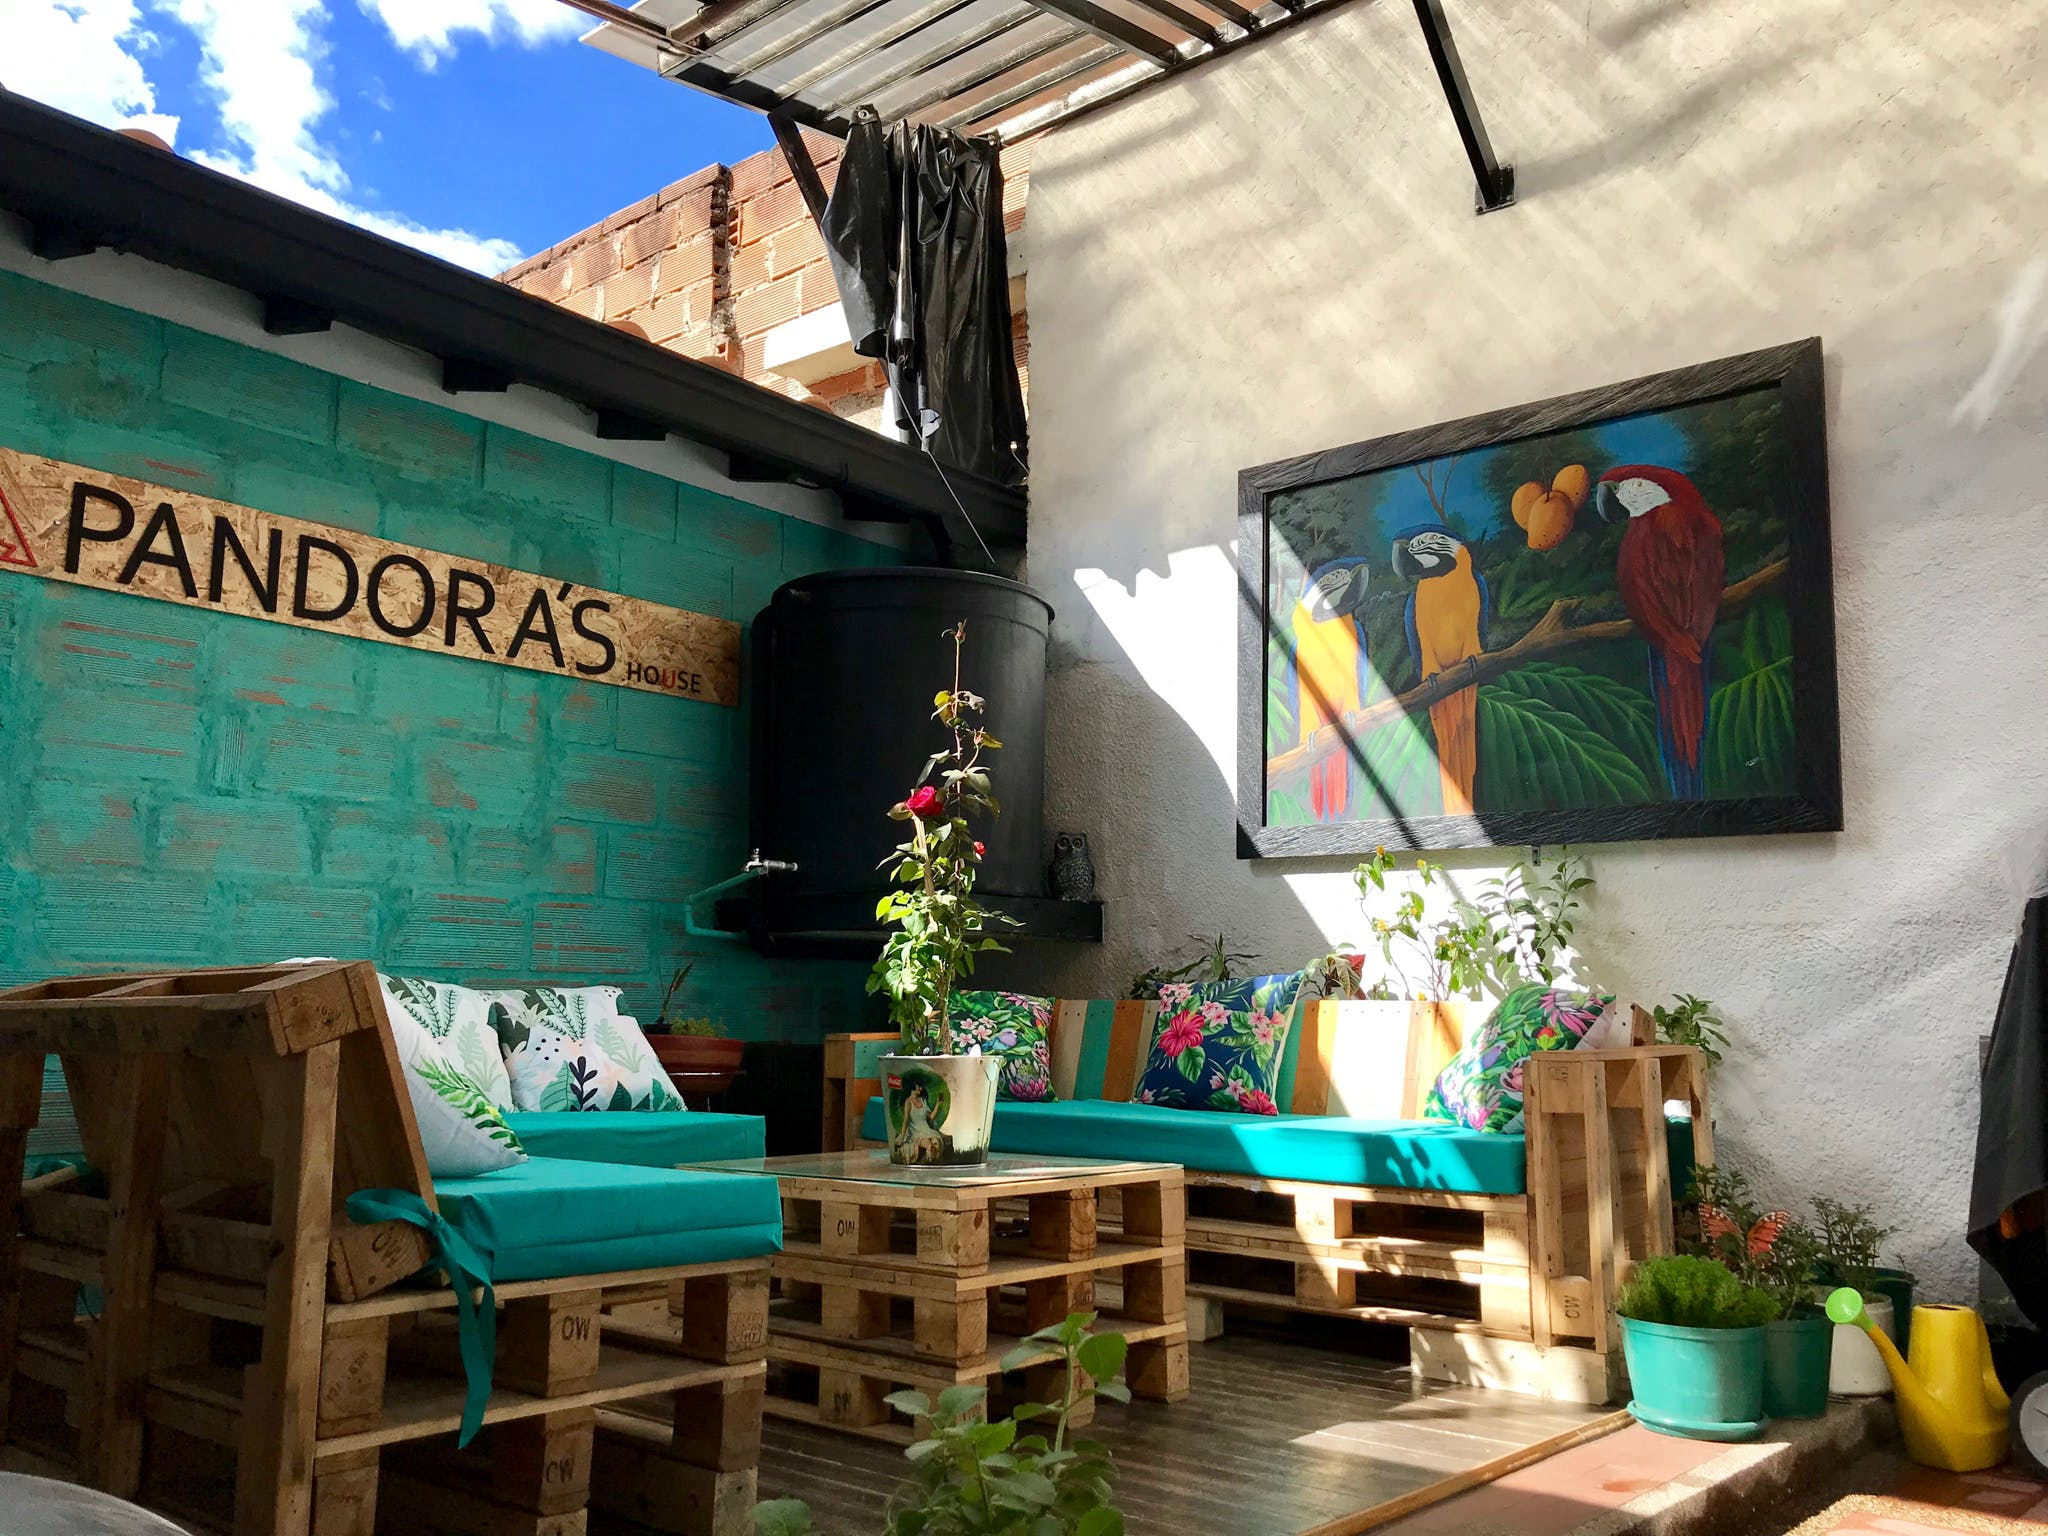 12 Residents   San Marcos - Envigado   Ecofriendly Trendy House - Incl. Coworking + Lounge Areas